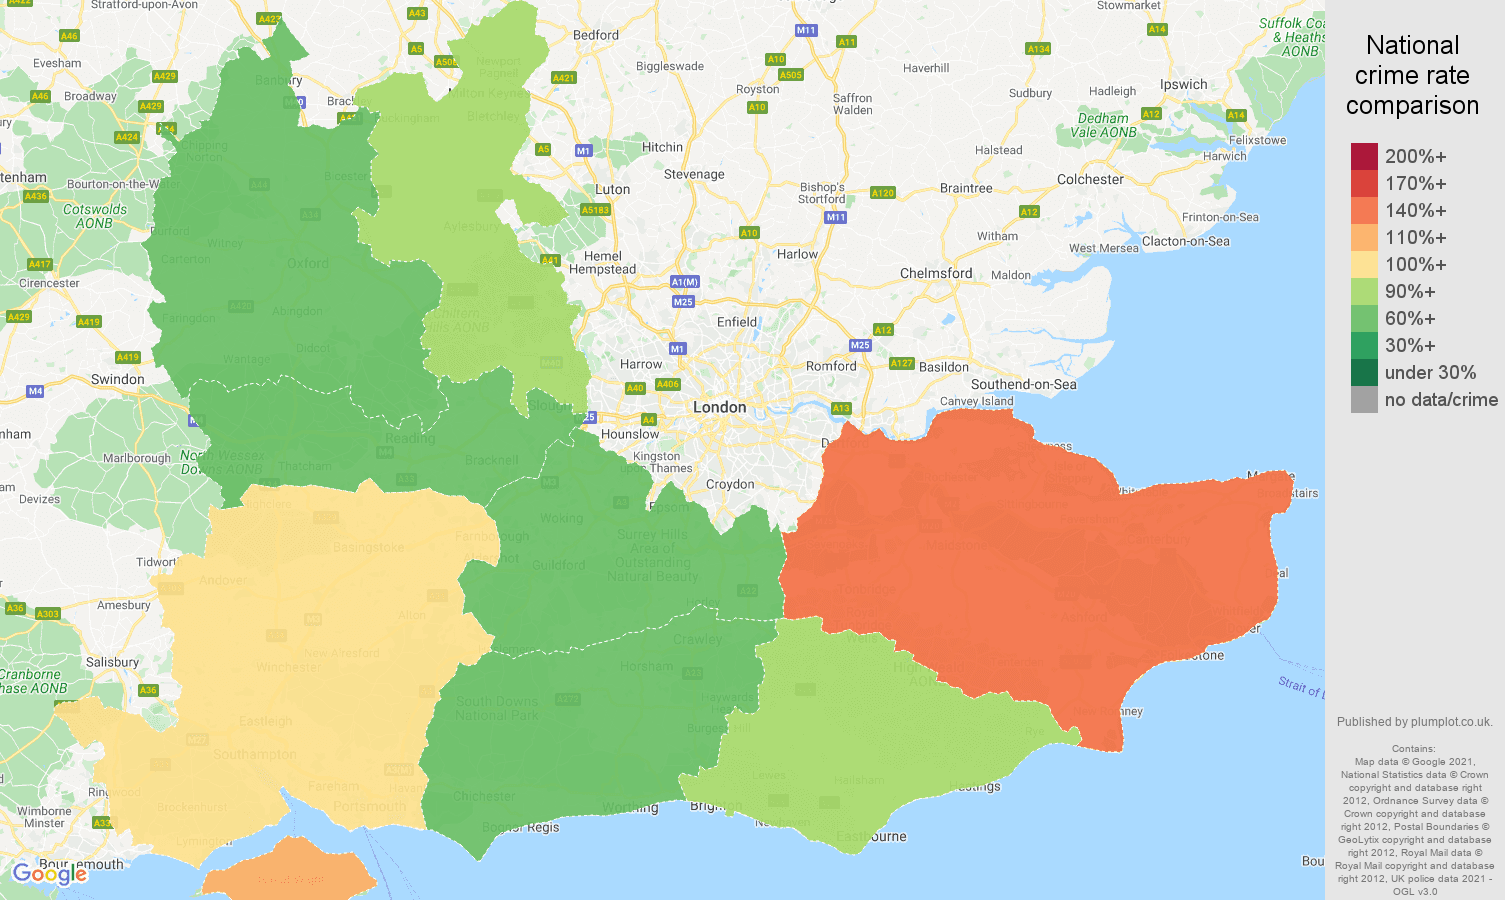 South East violent crime rate comparison map